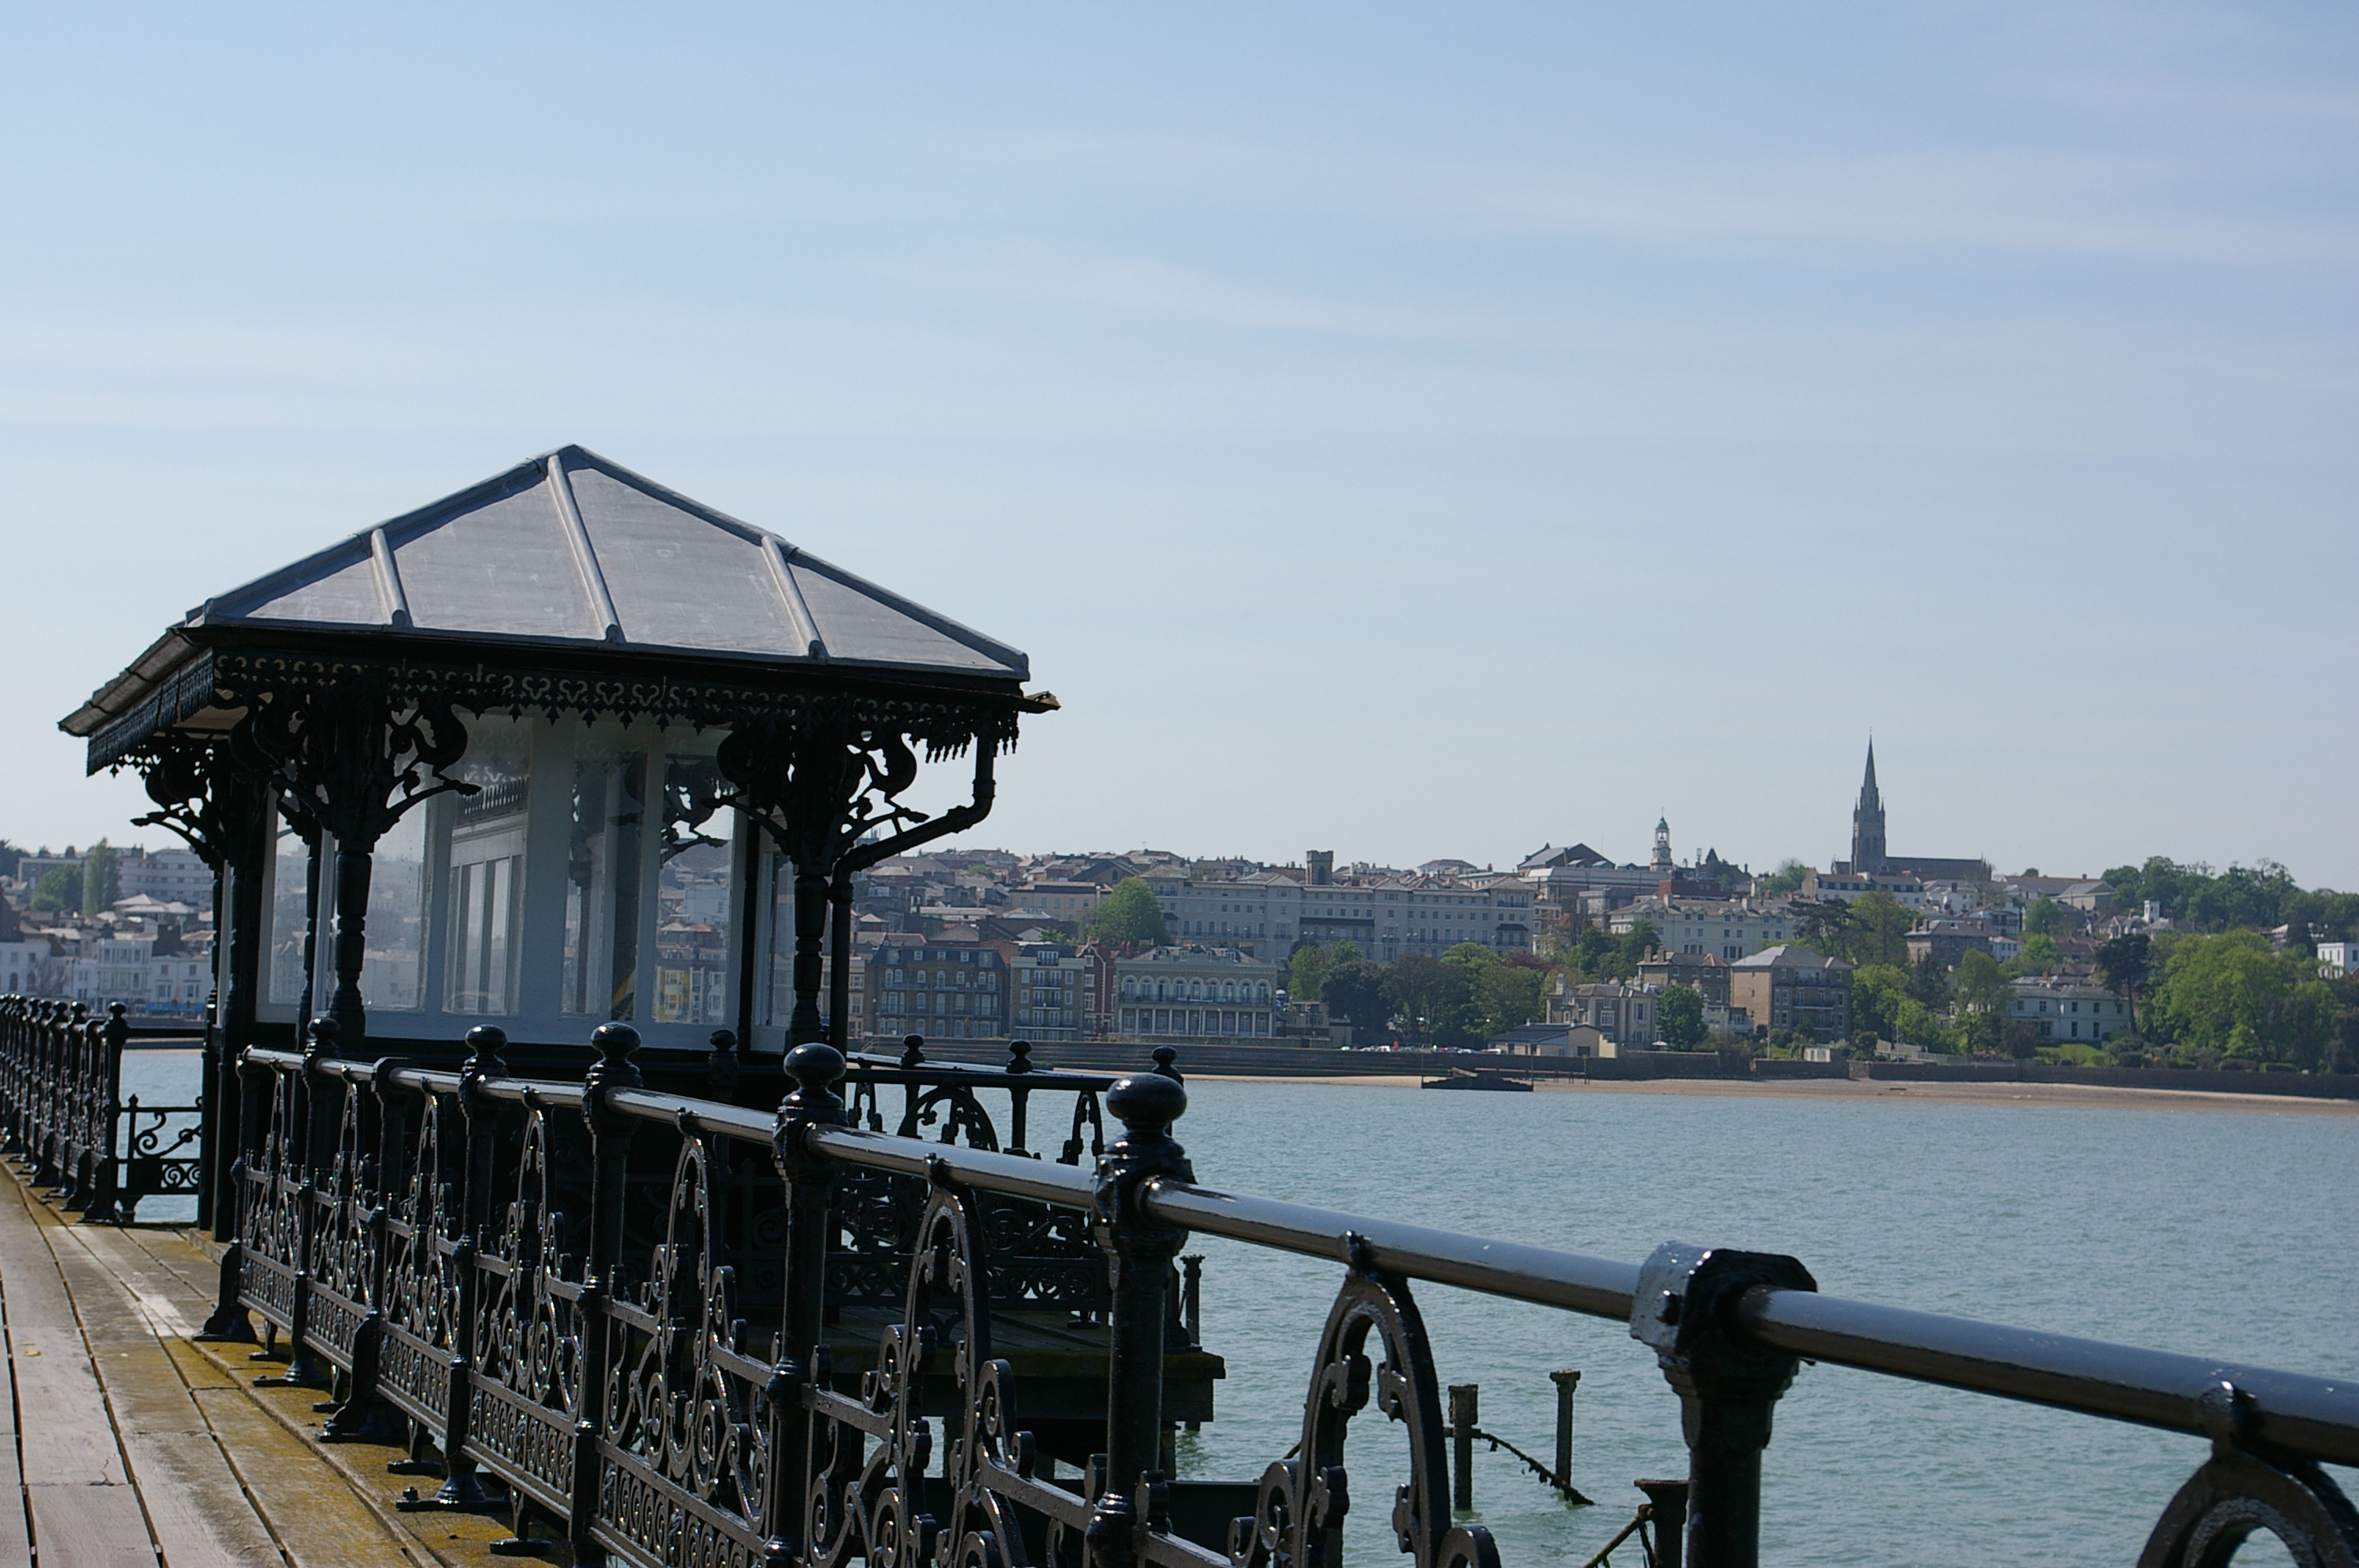 ryde pier and ryde town